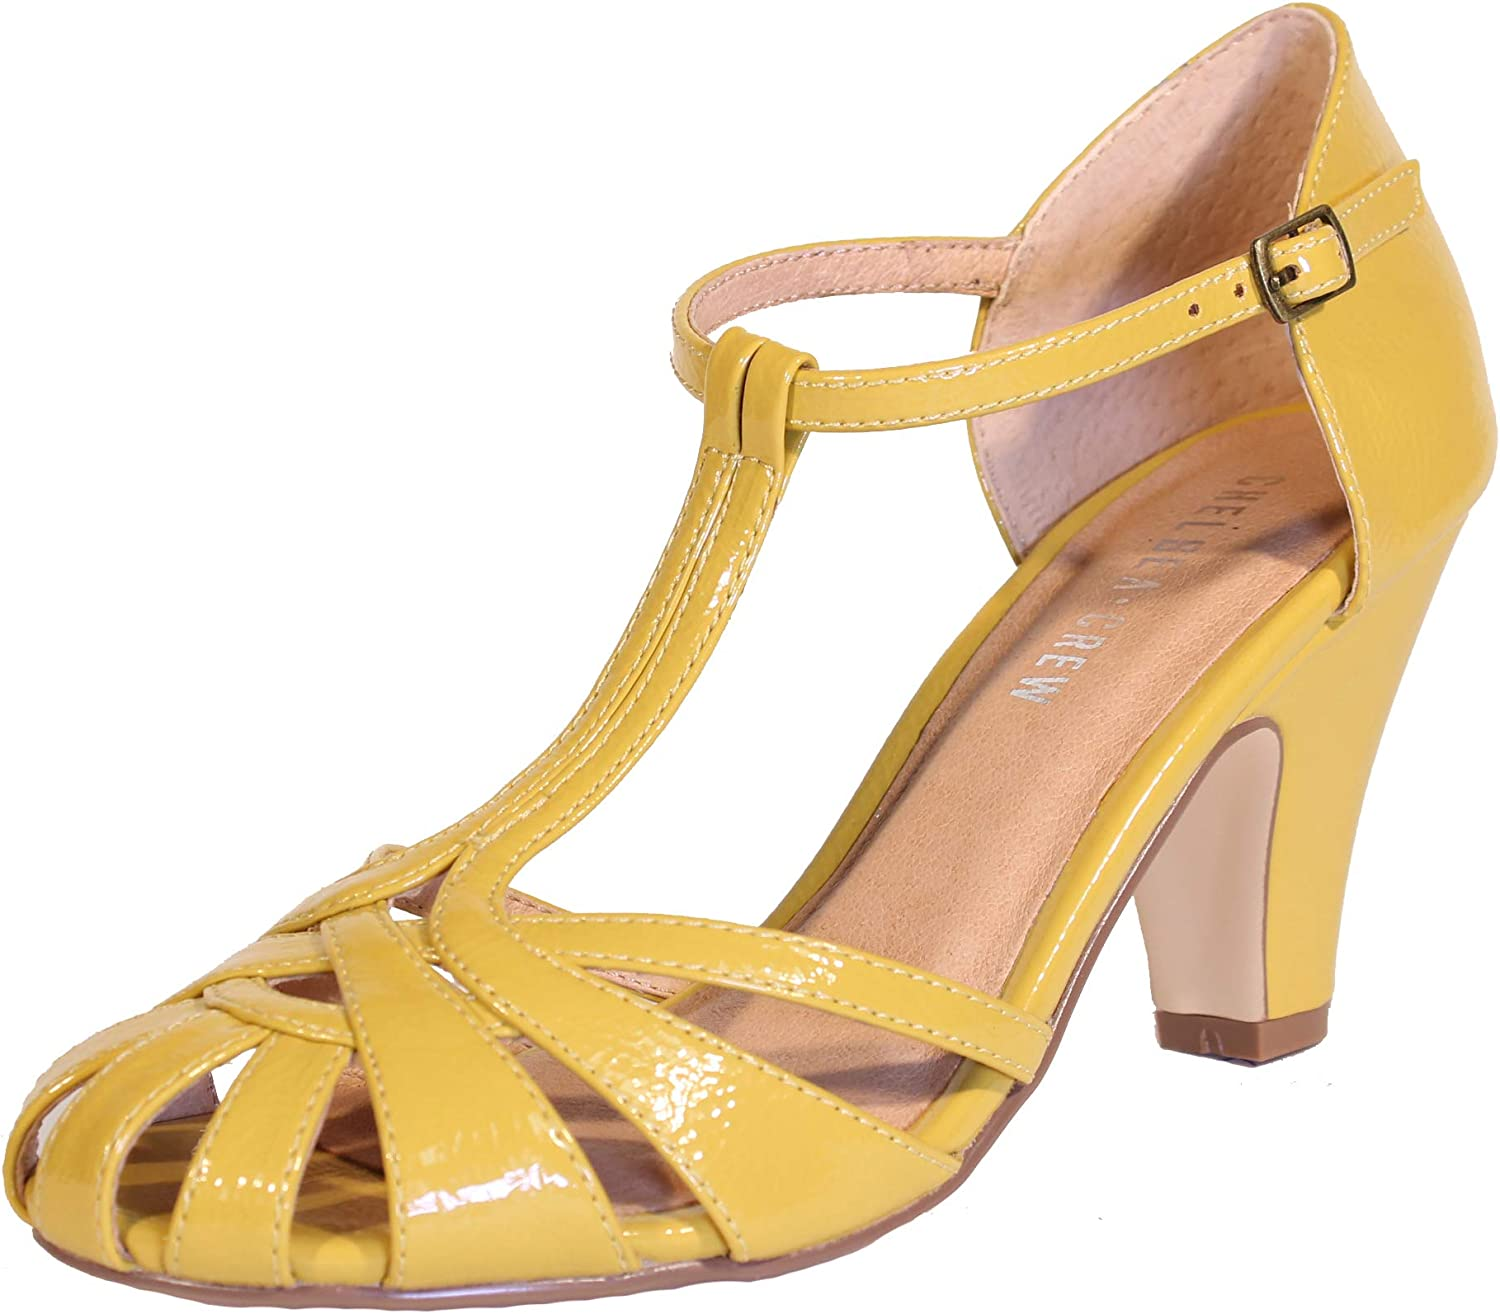 1940s Shoes Styles for Women History Chelsea Crew Sergi Womens T-Strap Patent Leather Heels $75.00 AT vintagedancer.com